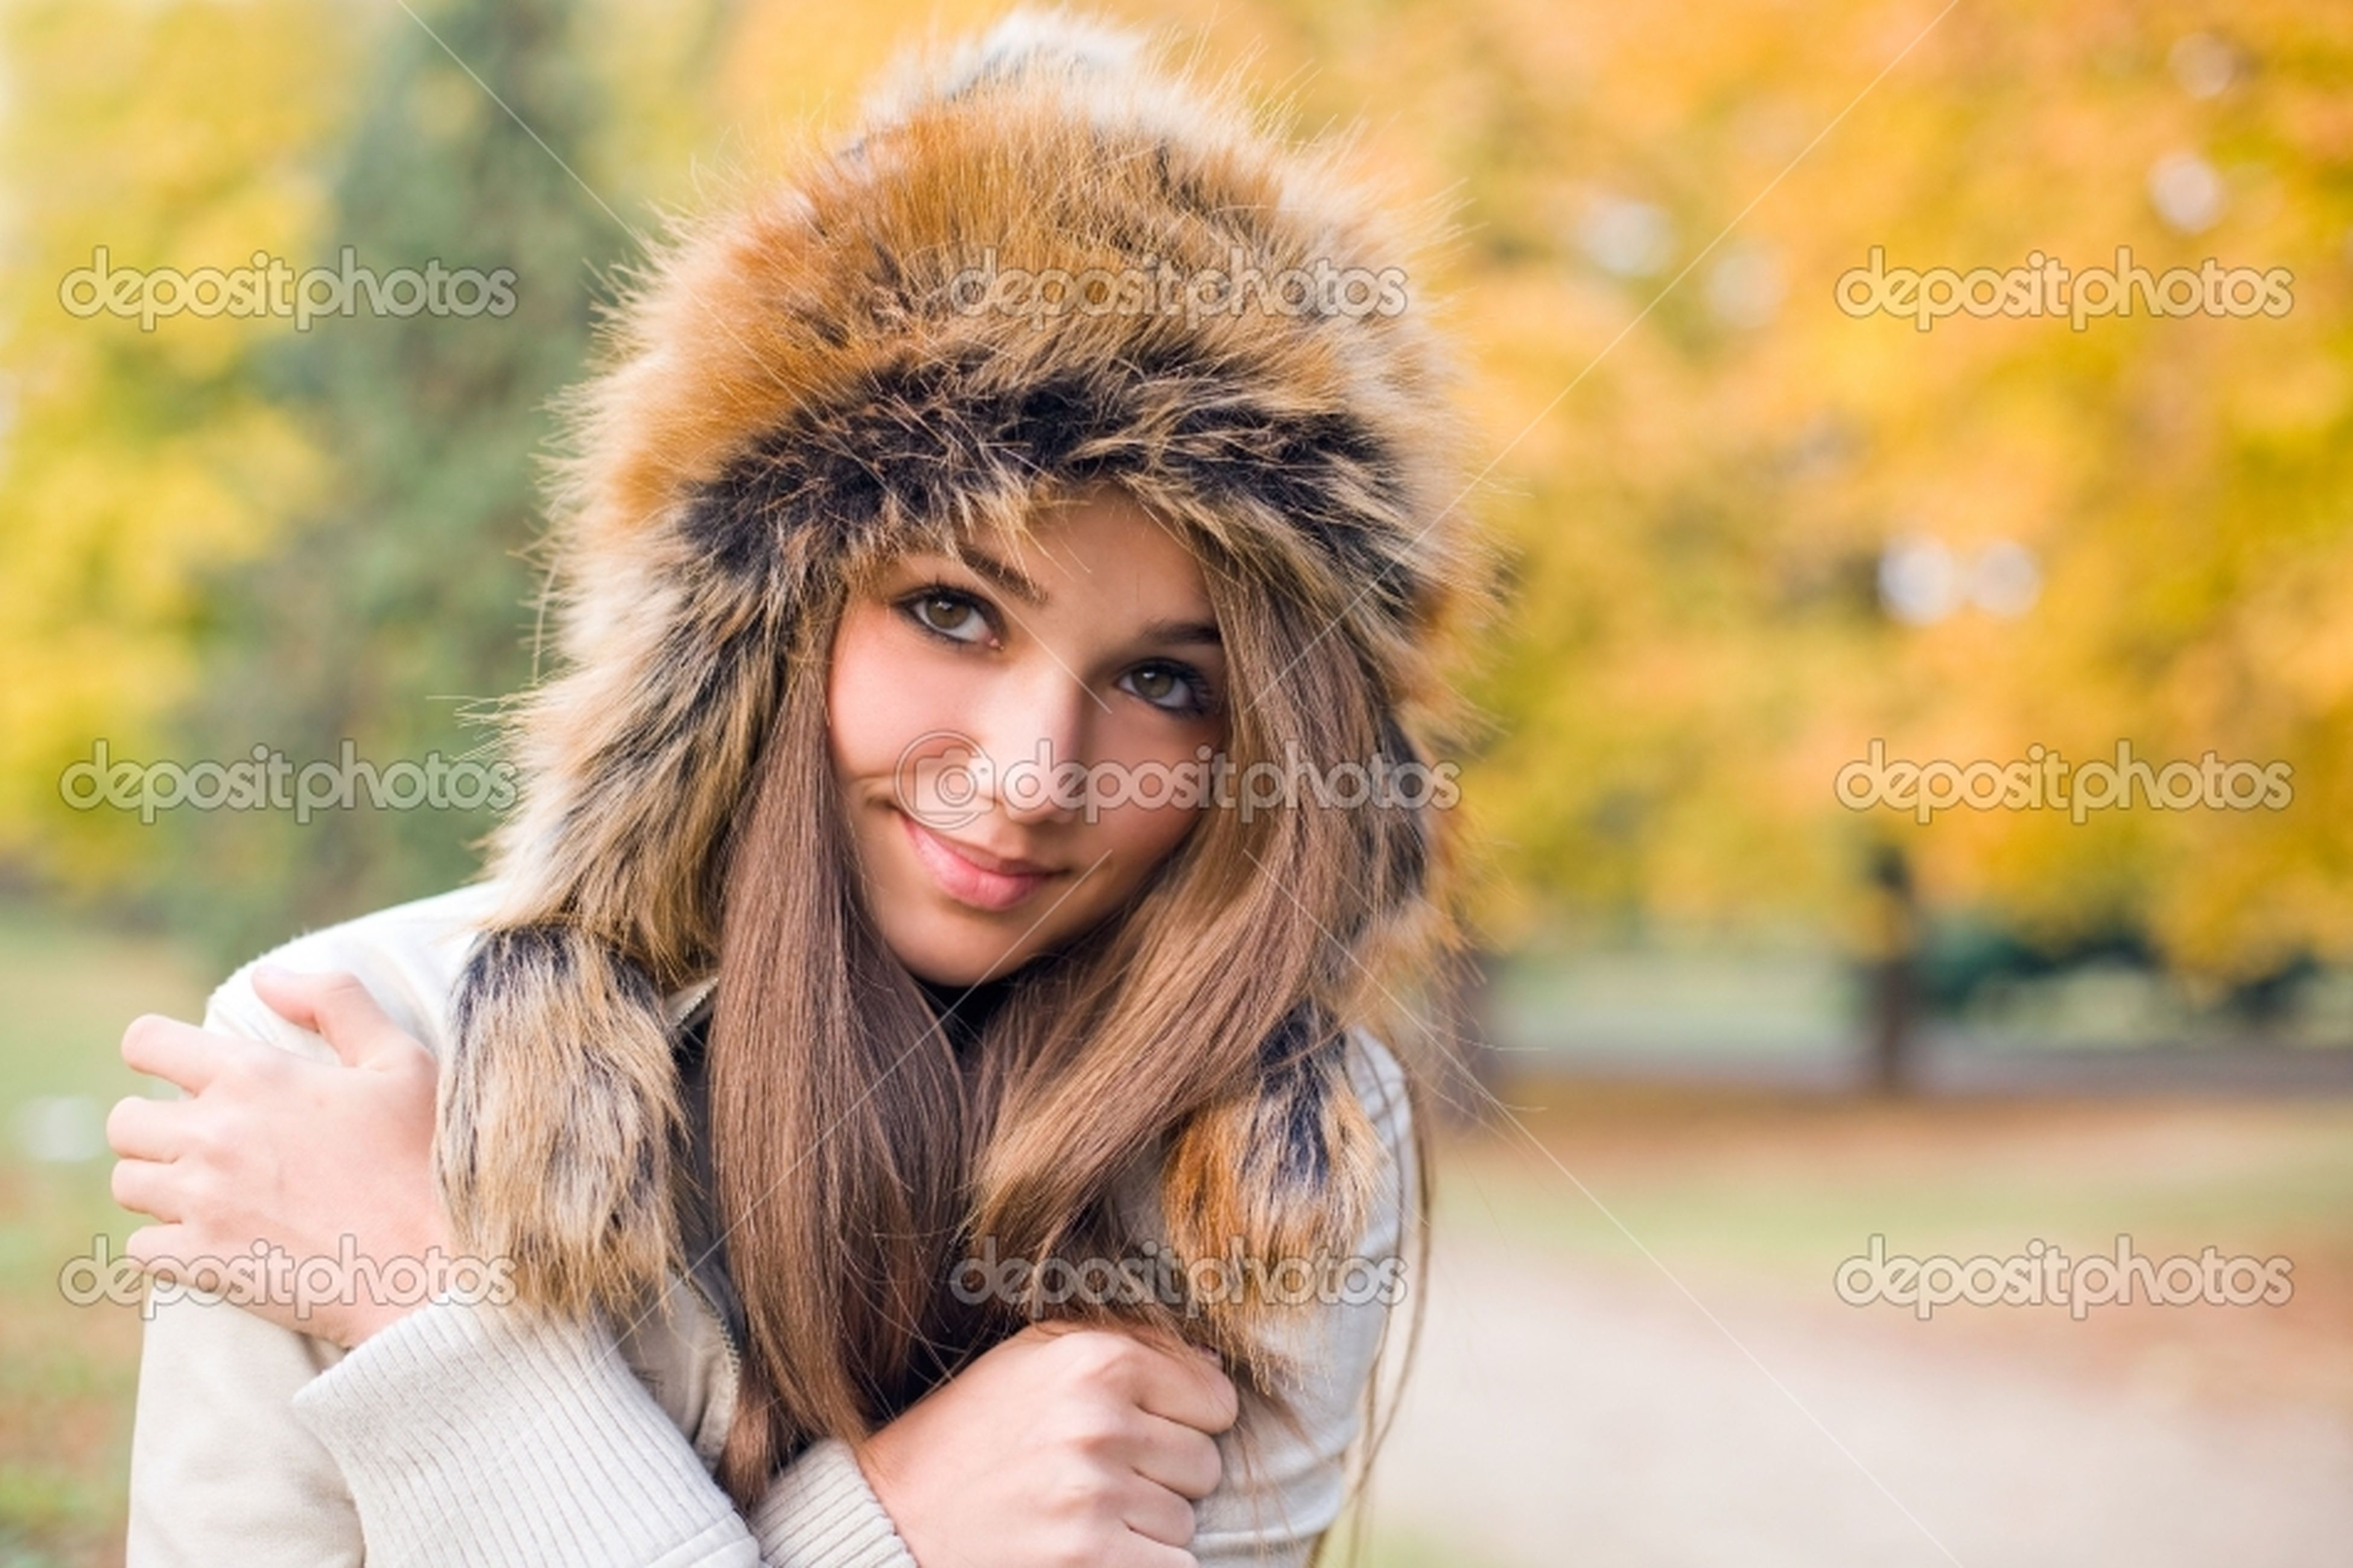 young adult, lifestyles, person, focus on foreground, portrait, communication, smiling, leisure activity, looking at camera, text, headshot, front view, young women, western script, long hair, head and shoulders, happiness, brown hair